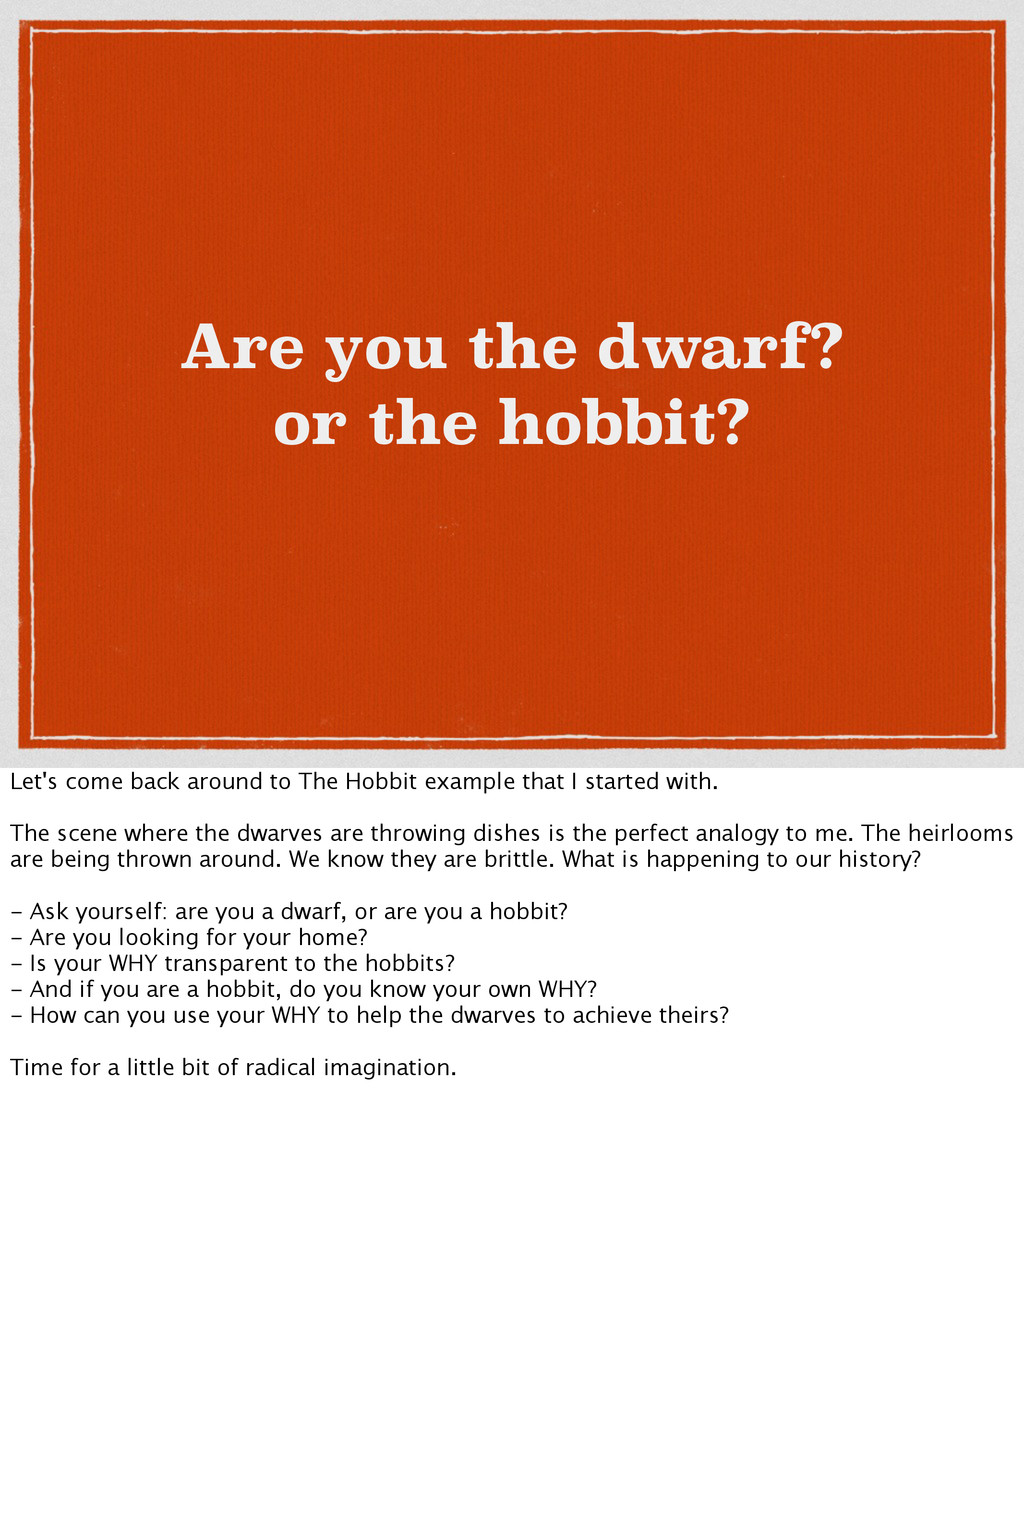 Are you the dwarf? or the hobbit? Let's come ba...